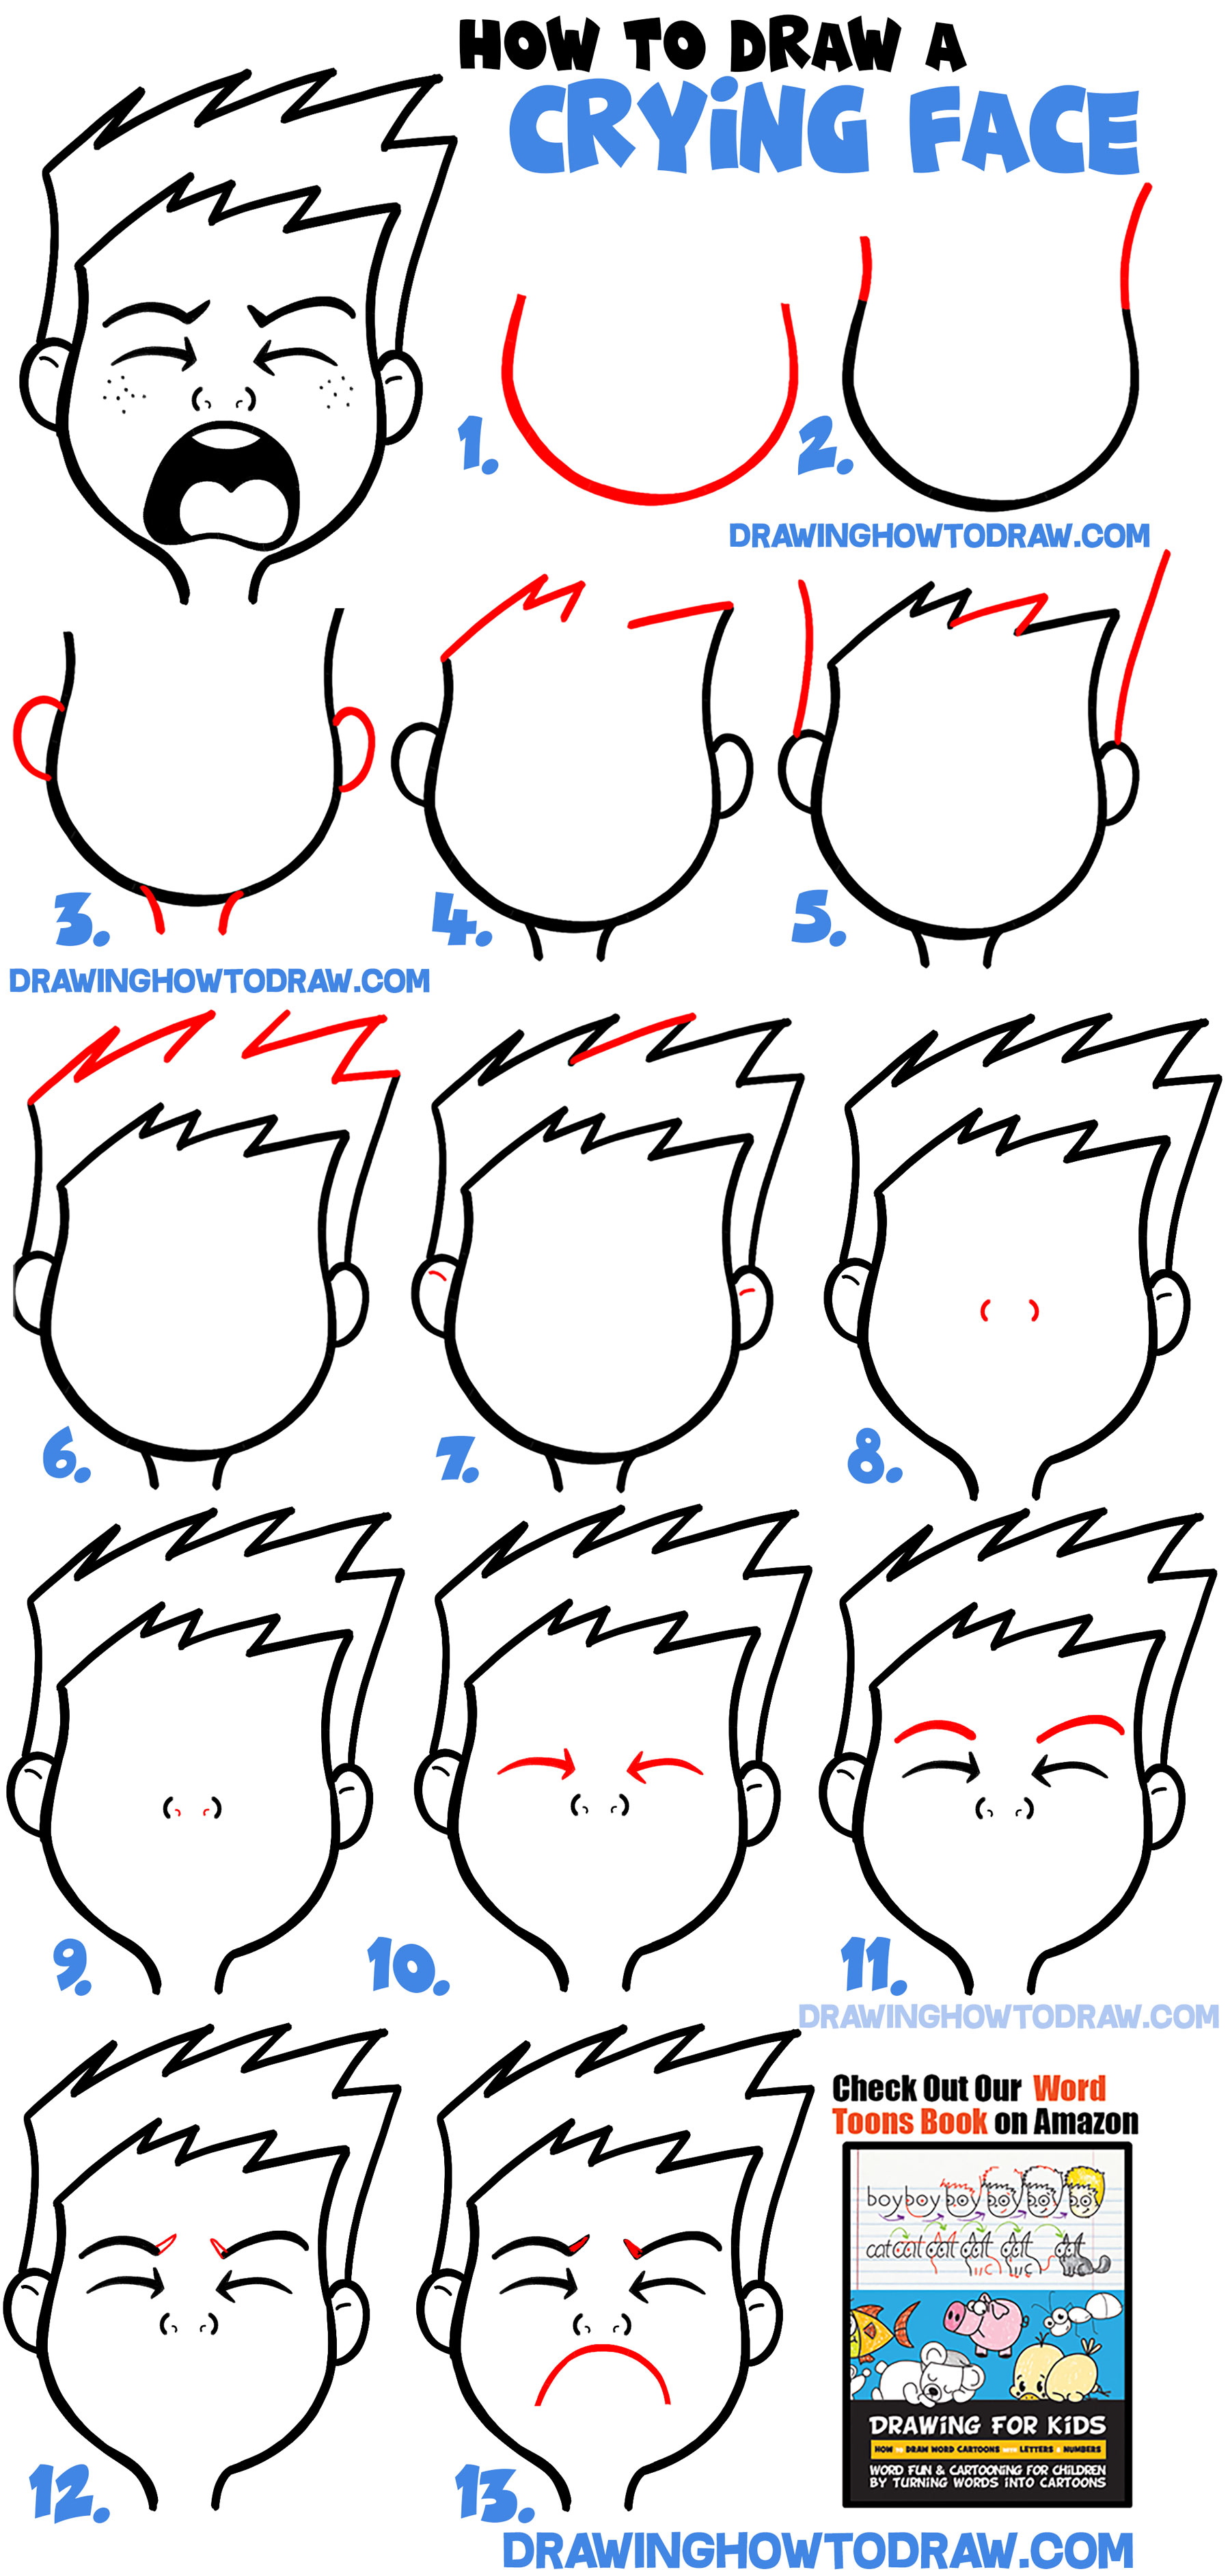 How to Draw Cartoon Facial Expressions : Crying, Sad, Sobbing, Bawling : Simple Lesson for Kids